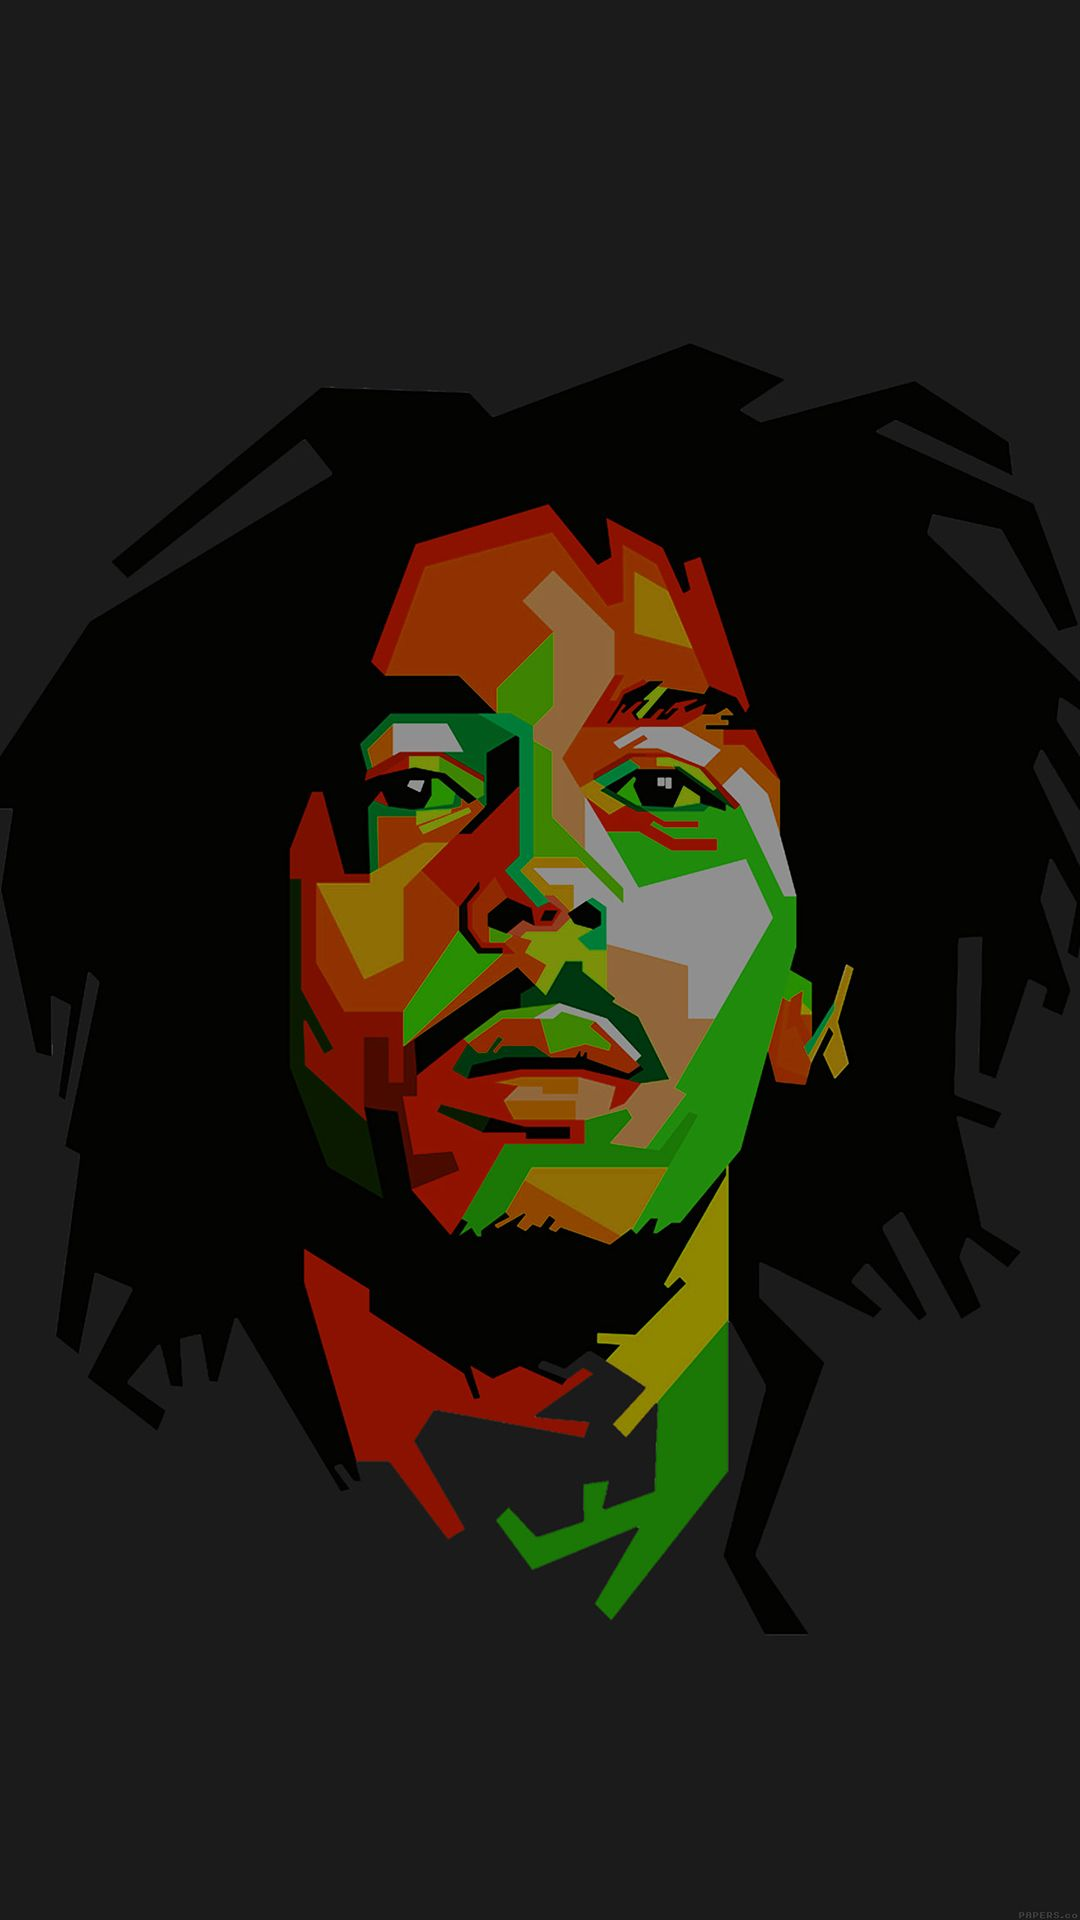 Wallpaper iphone rasta - Bob Marley Dark Art Illust Music Reggae Celebrity Iphone 7 Wallpaper